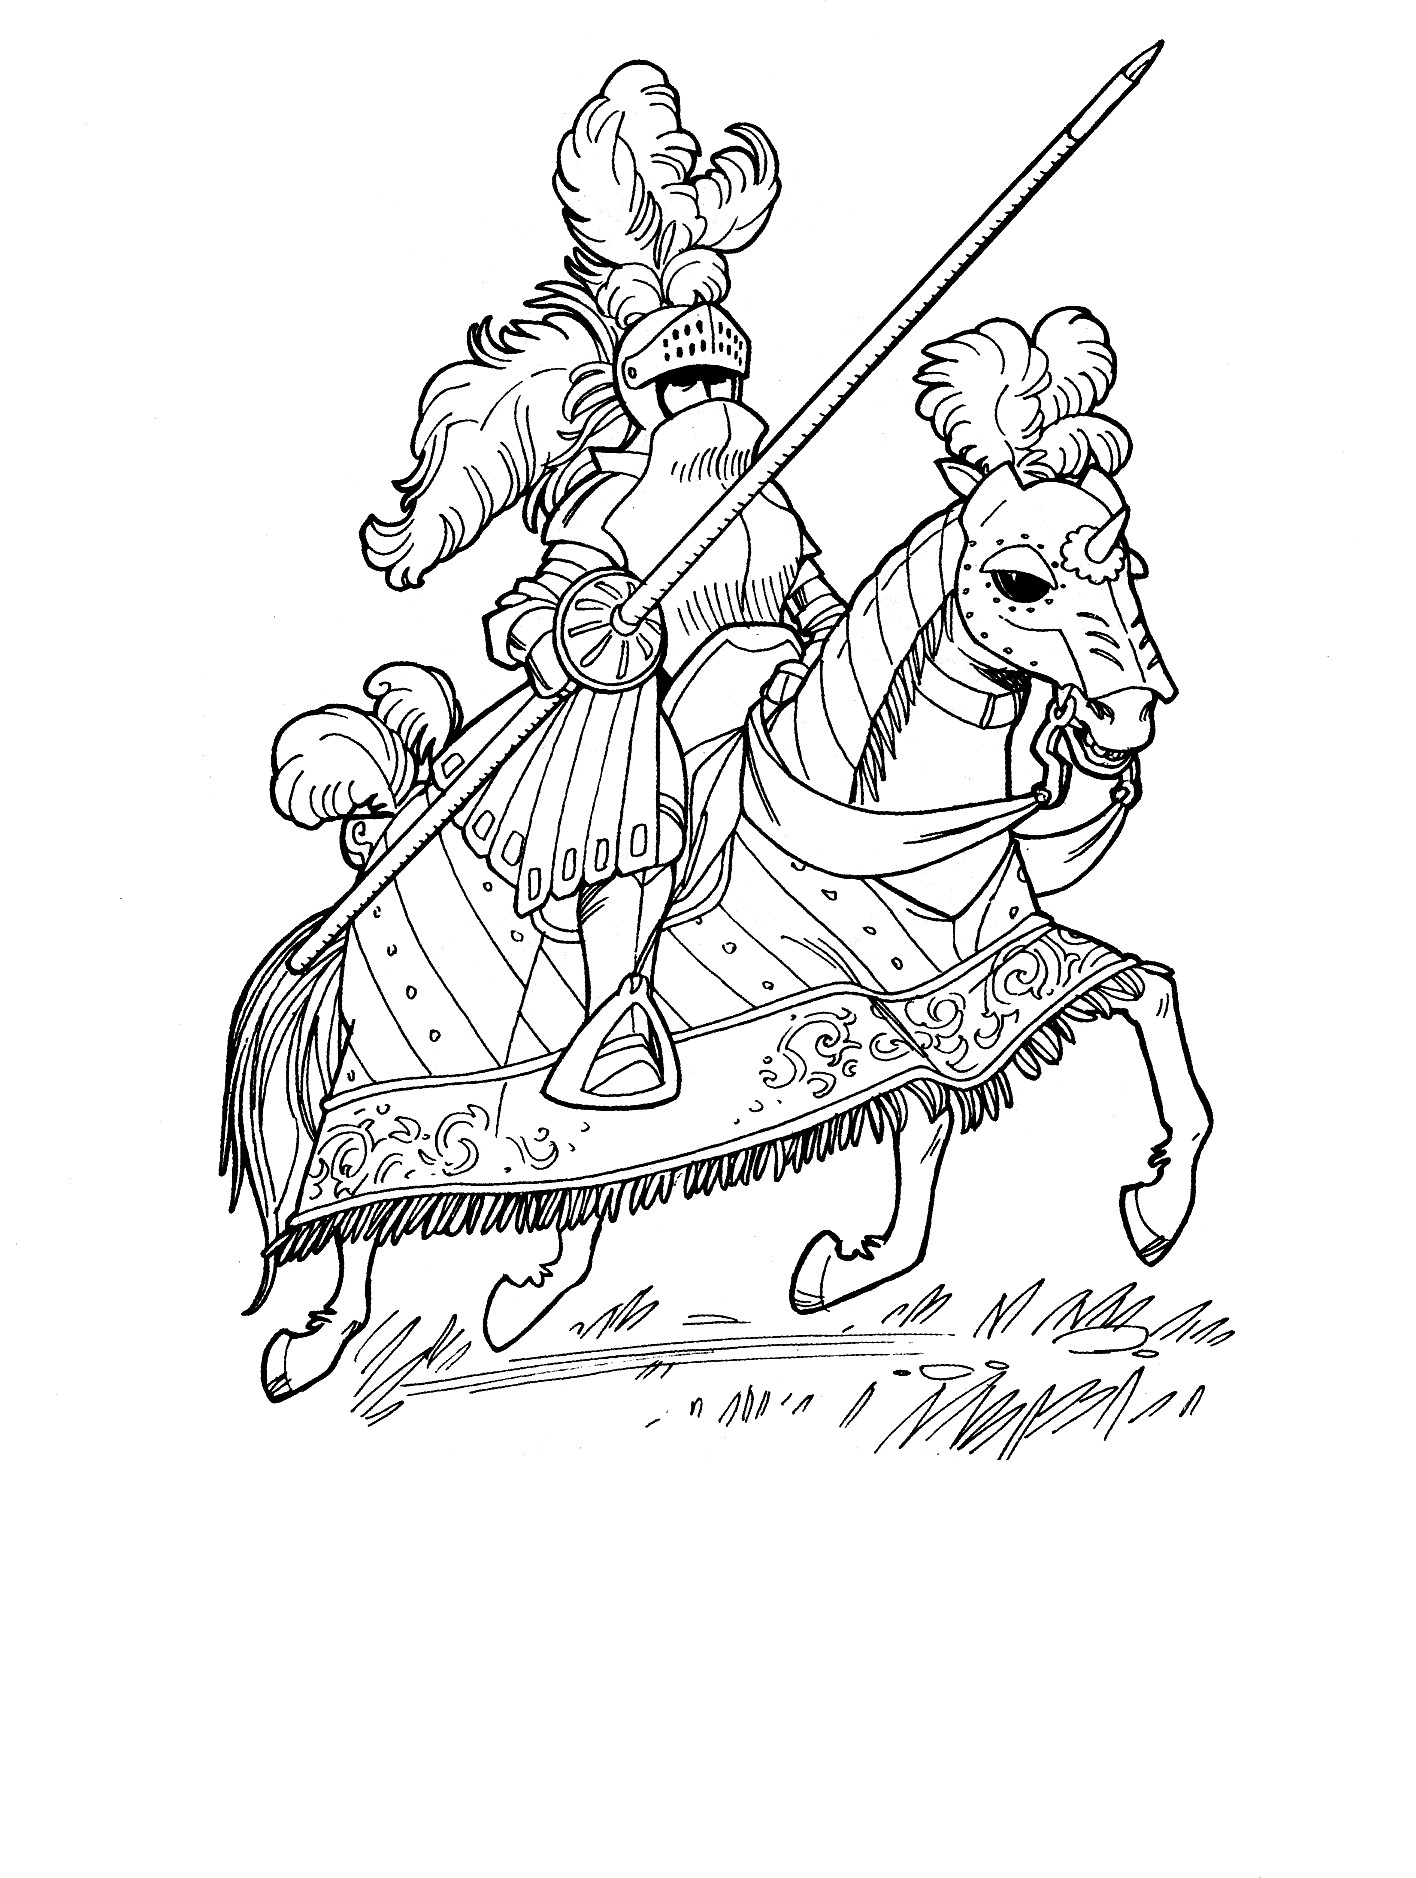 lego lord of the rings coloring pages unique knights legend coloring picture for kids coloring of lego lord of the rings coloring pages